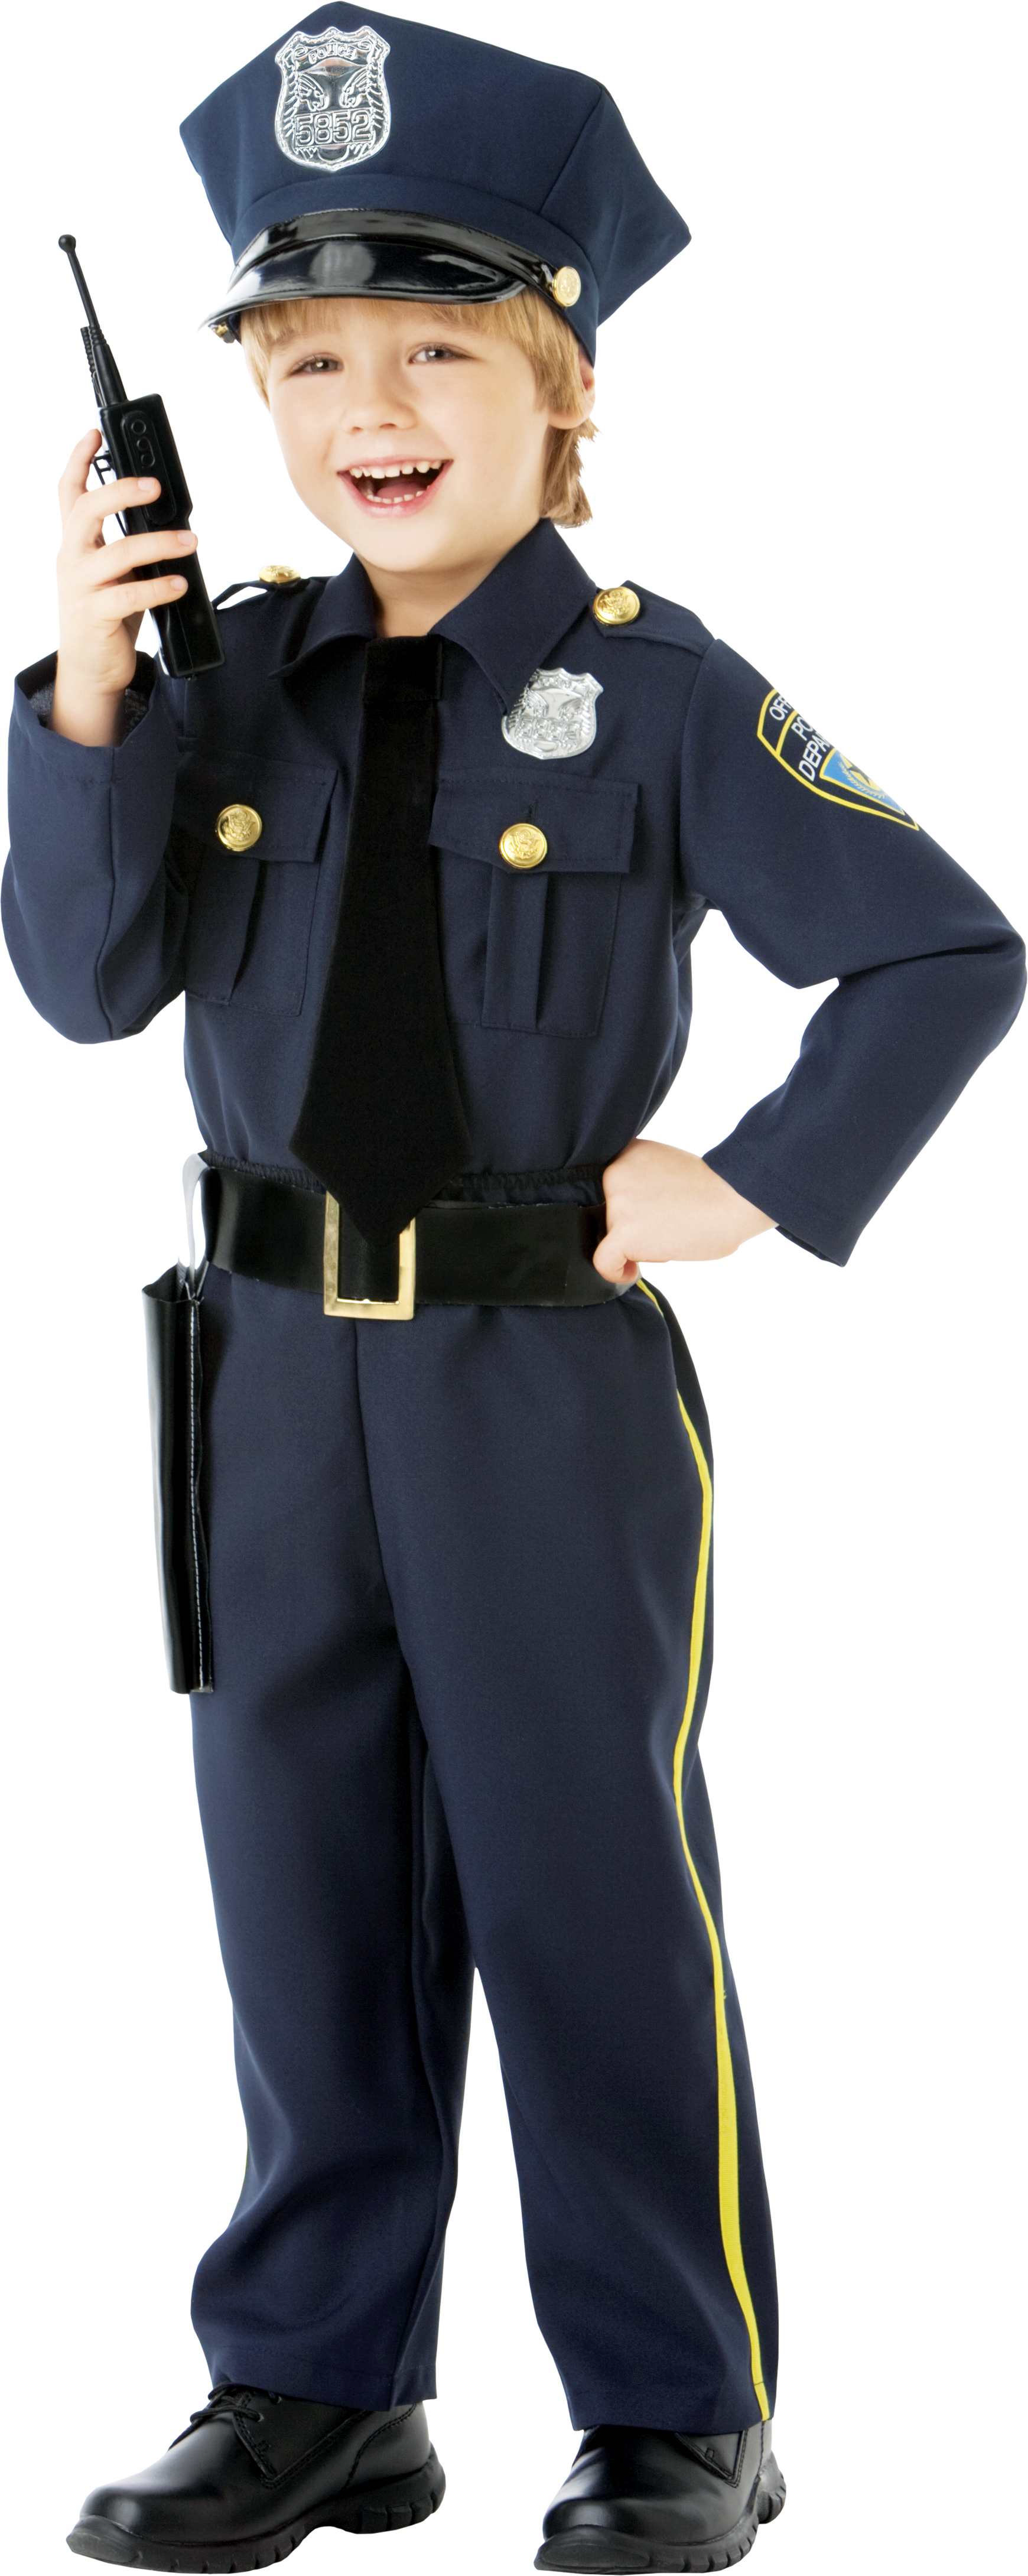 Police officer costume tv book and film costumes mega fancy dress - Police officer child costume ...